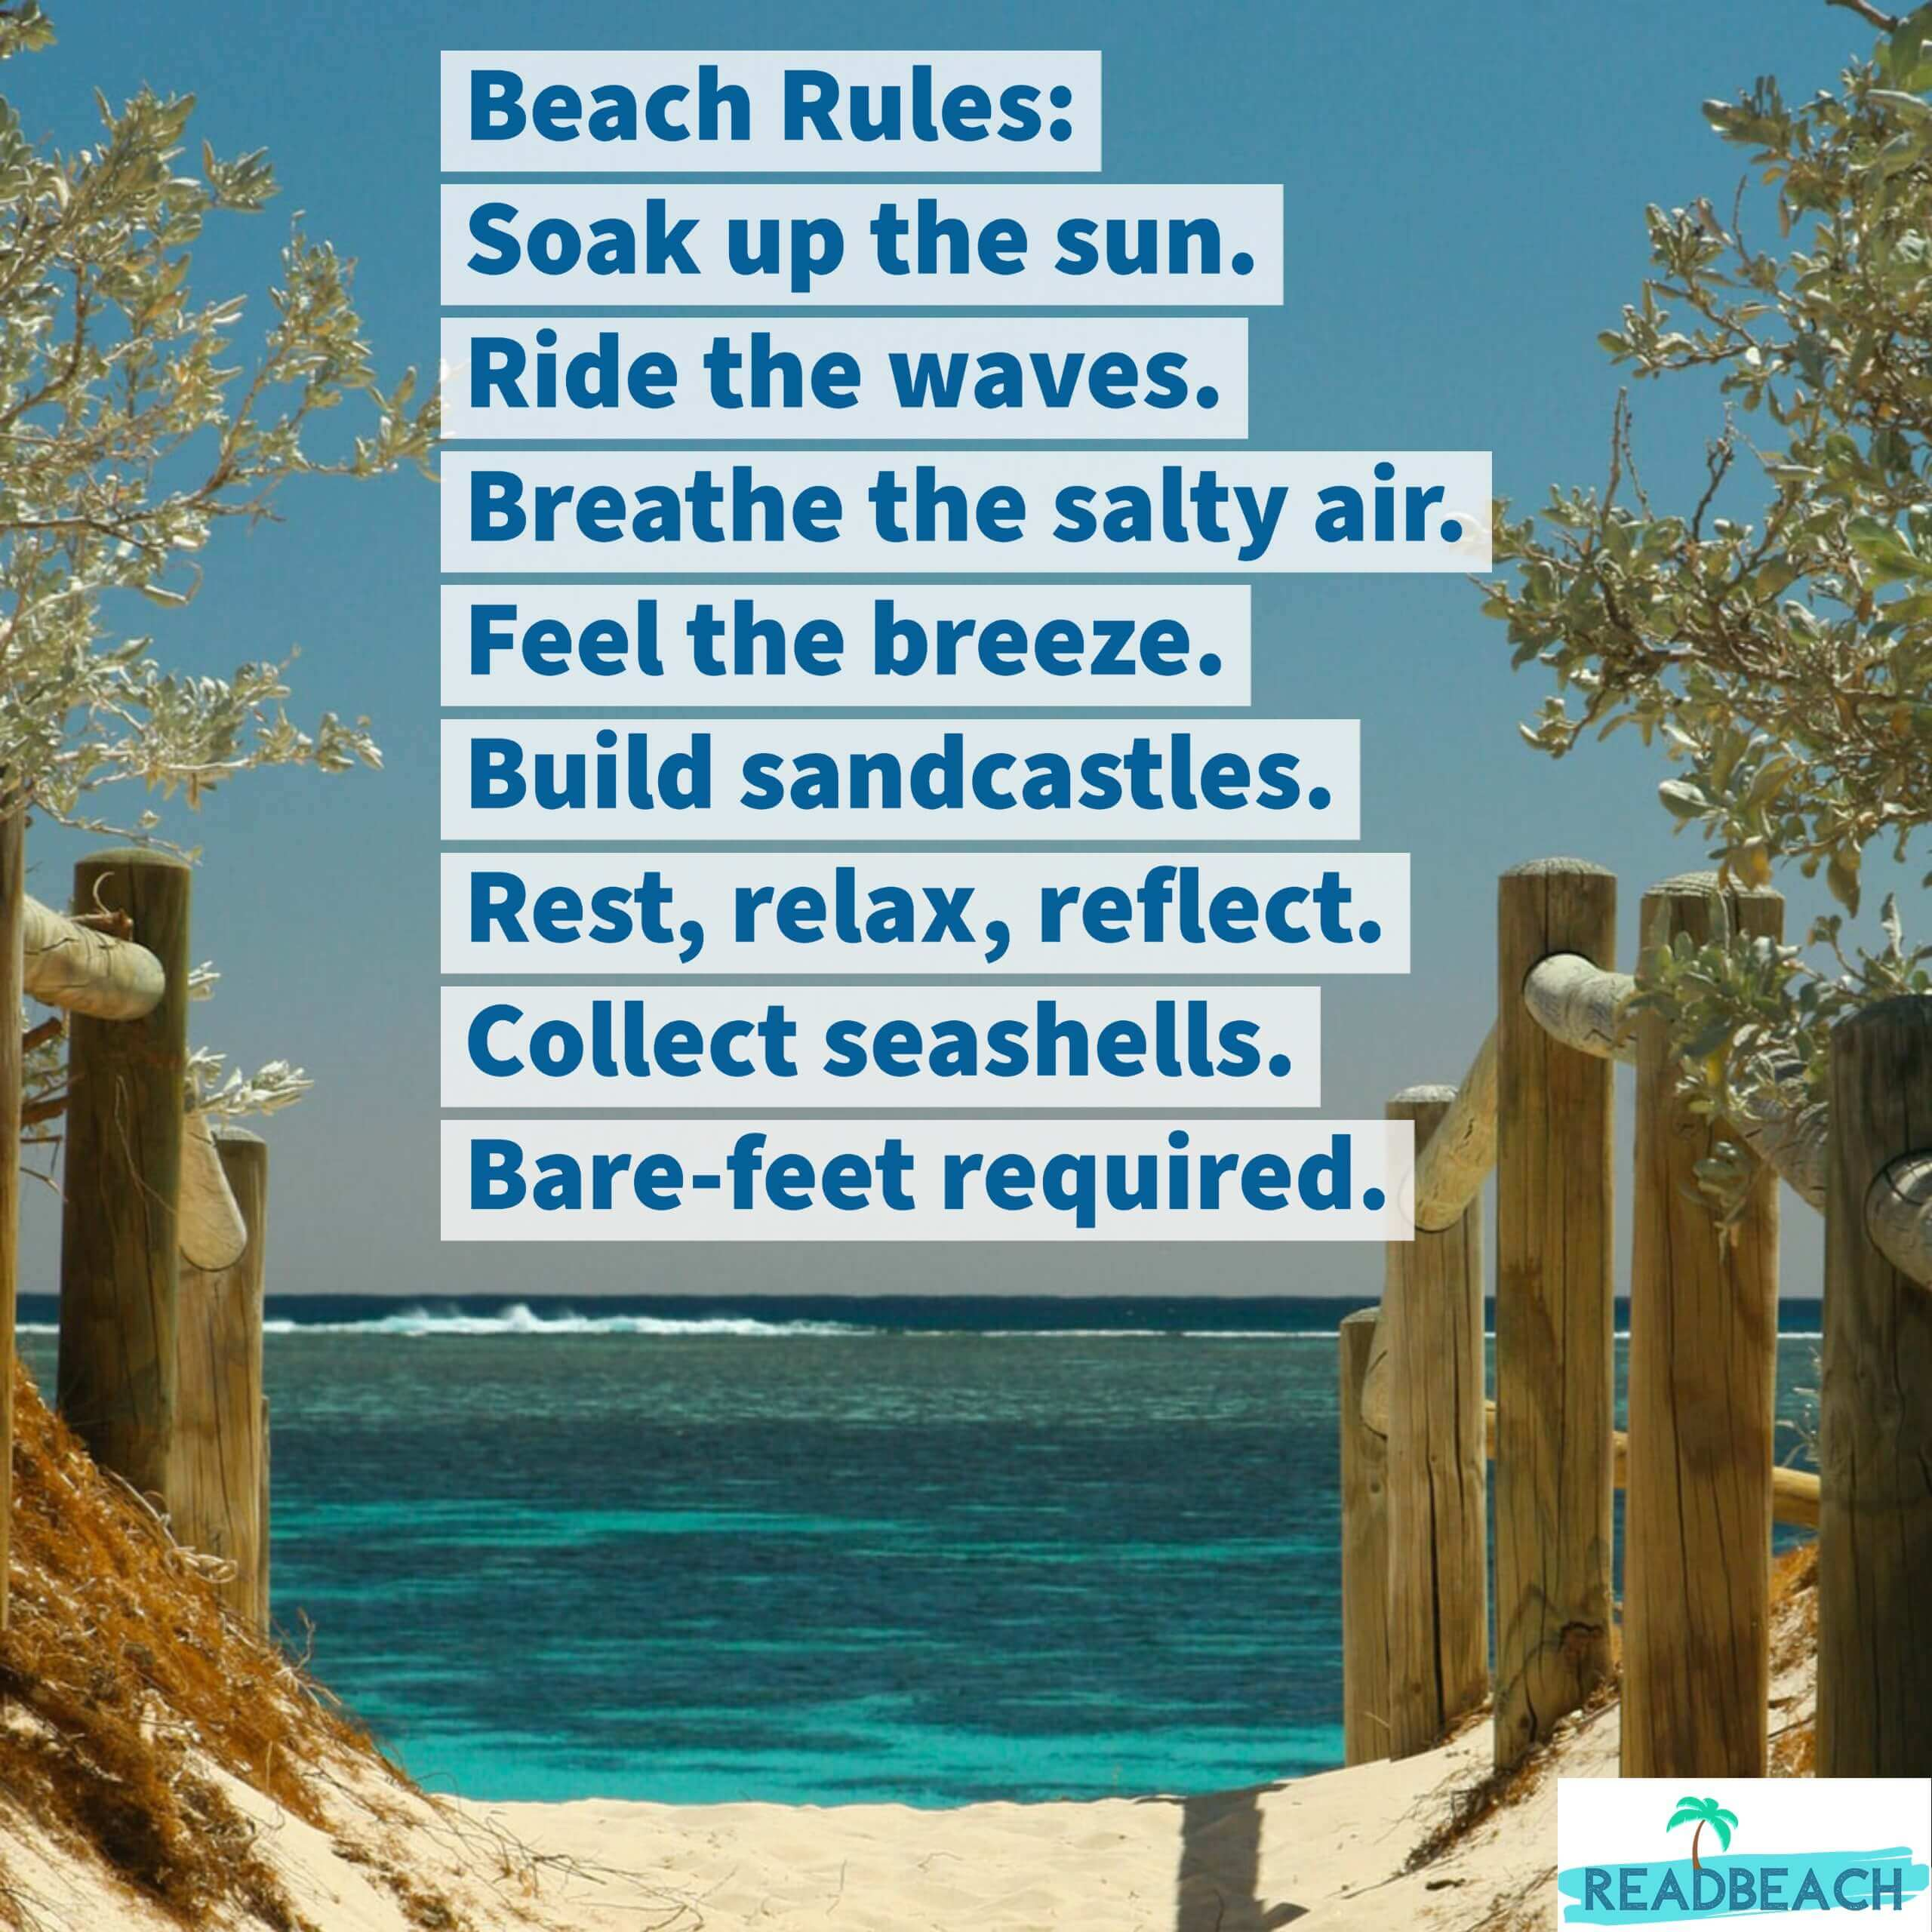 2 Breathing Quotes with Pictures 📸🖼️ - Beach Rules: Soak up the sun. Feel the breeze. Rest, relax, reflect.